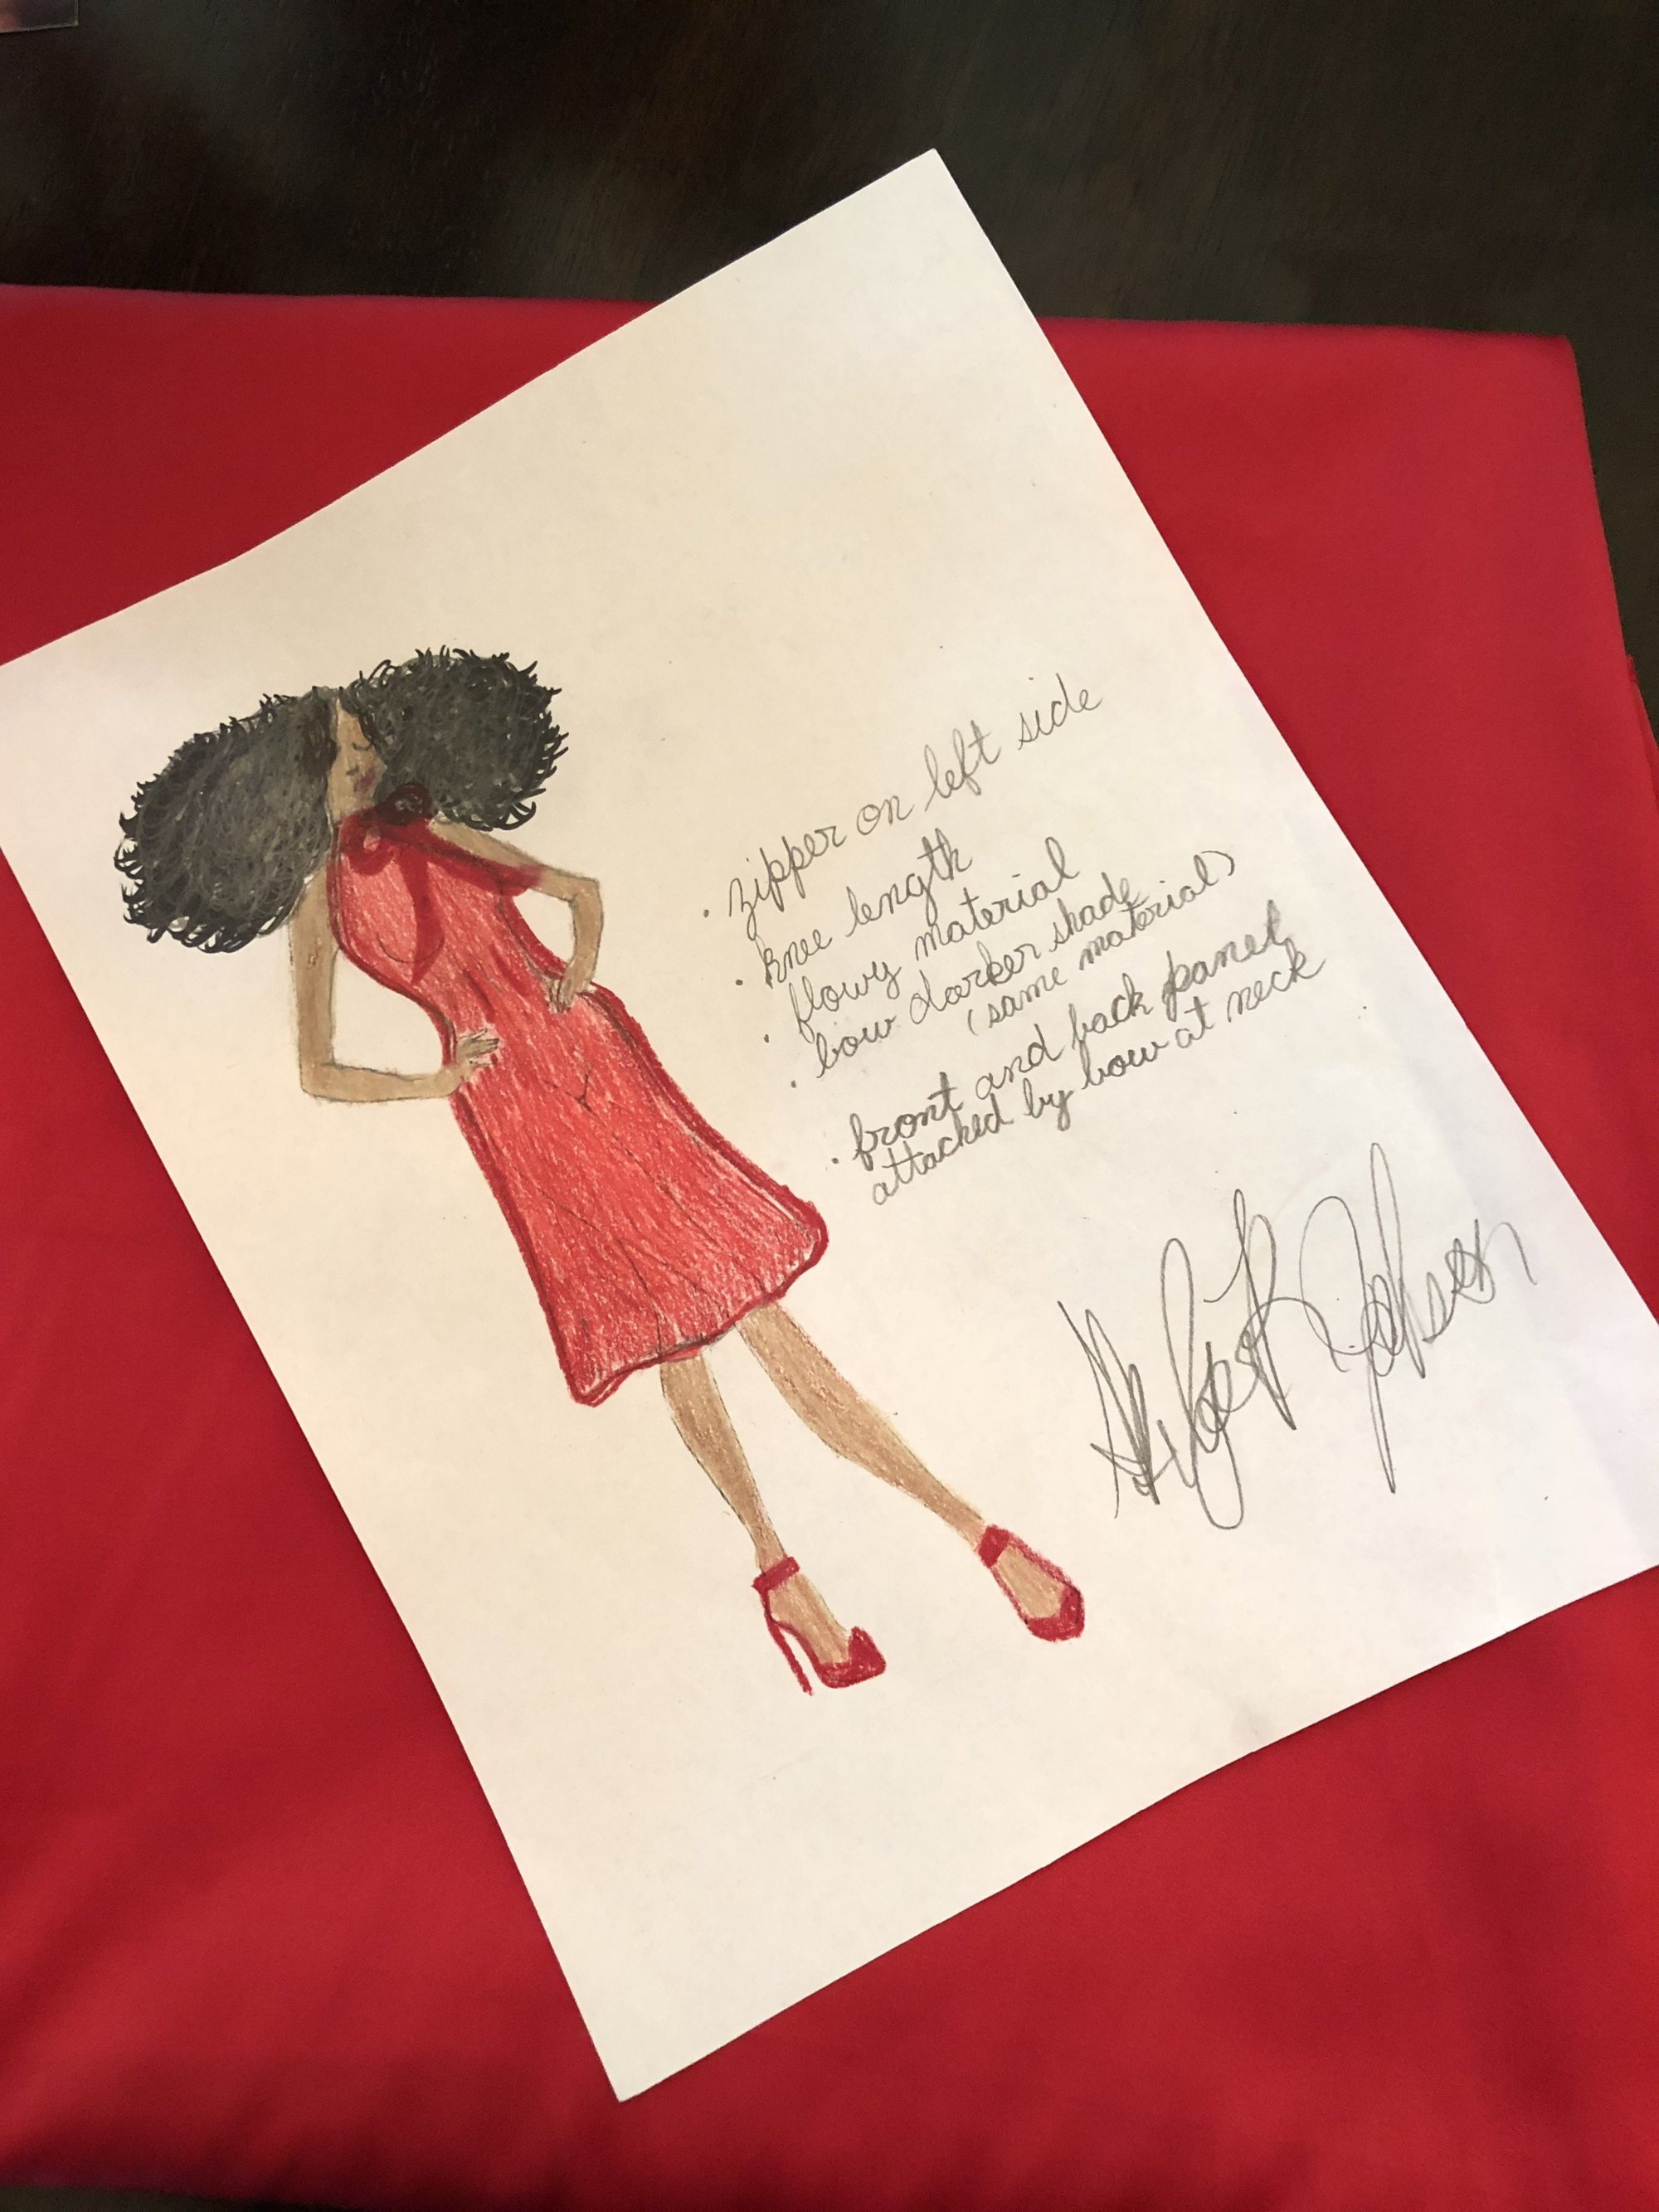 """""""The person that I want to make an outfit for that I look up to is Beyonce,"""" Skylar said. """"She's one of my dream clients."""" (Courtesy, Danyel Trammell)"""